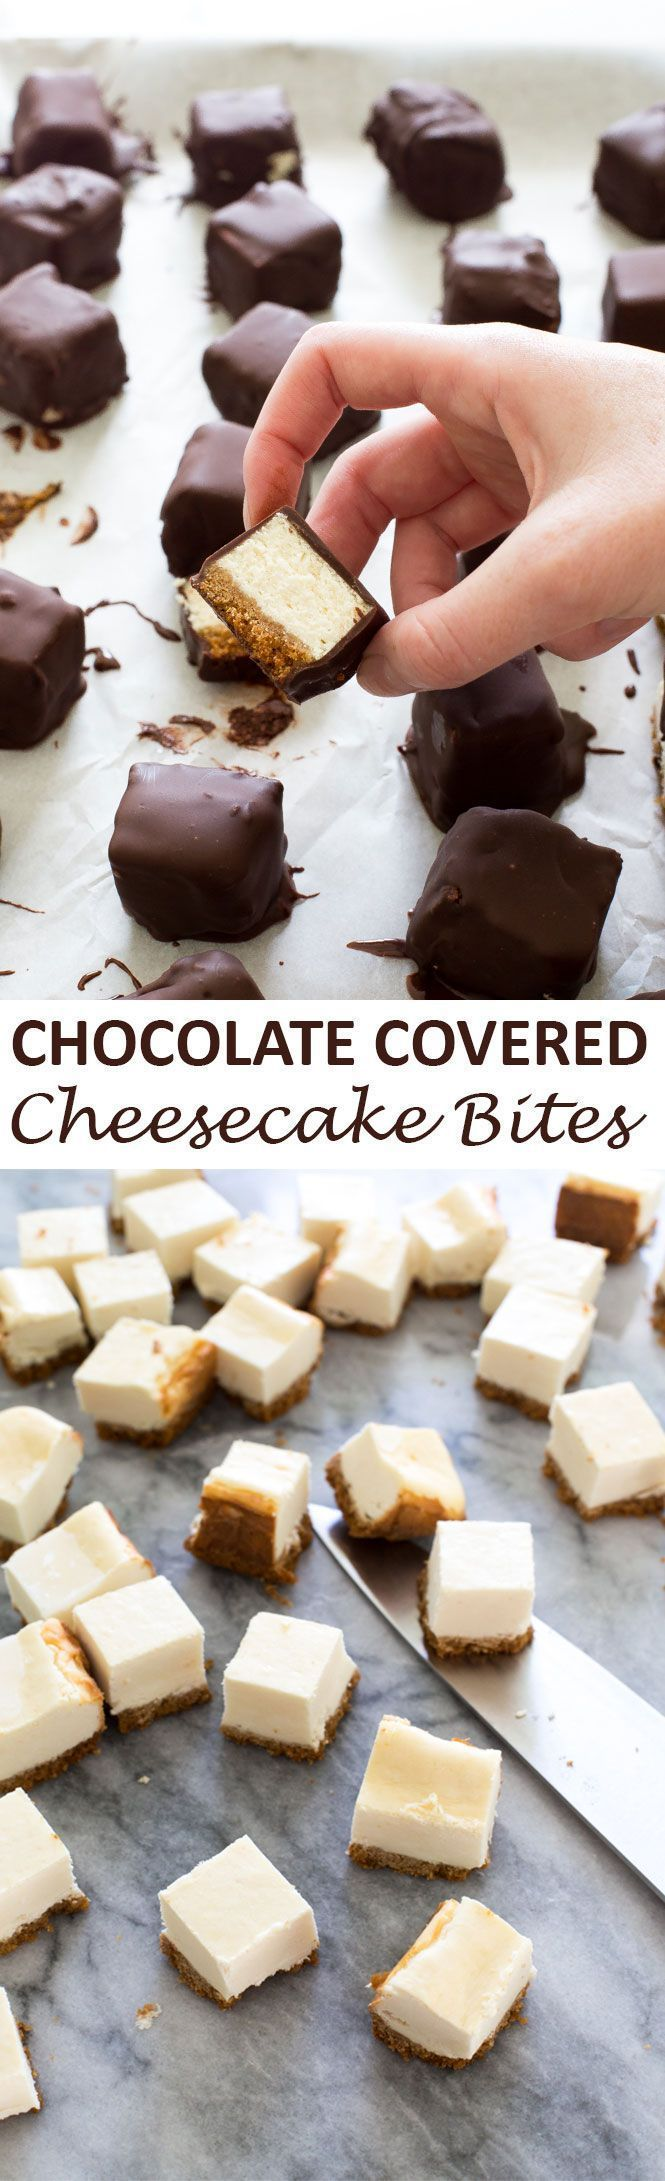 Chocolate Covered Cheesecake Bites. Perfect bite-sized cheesecake covered in a sweet chocolate shell coating. They are extremely addicting! | chefsavvy.com